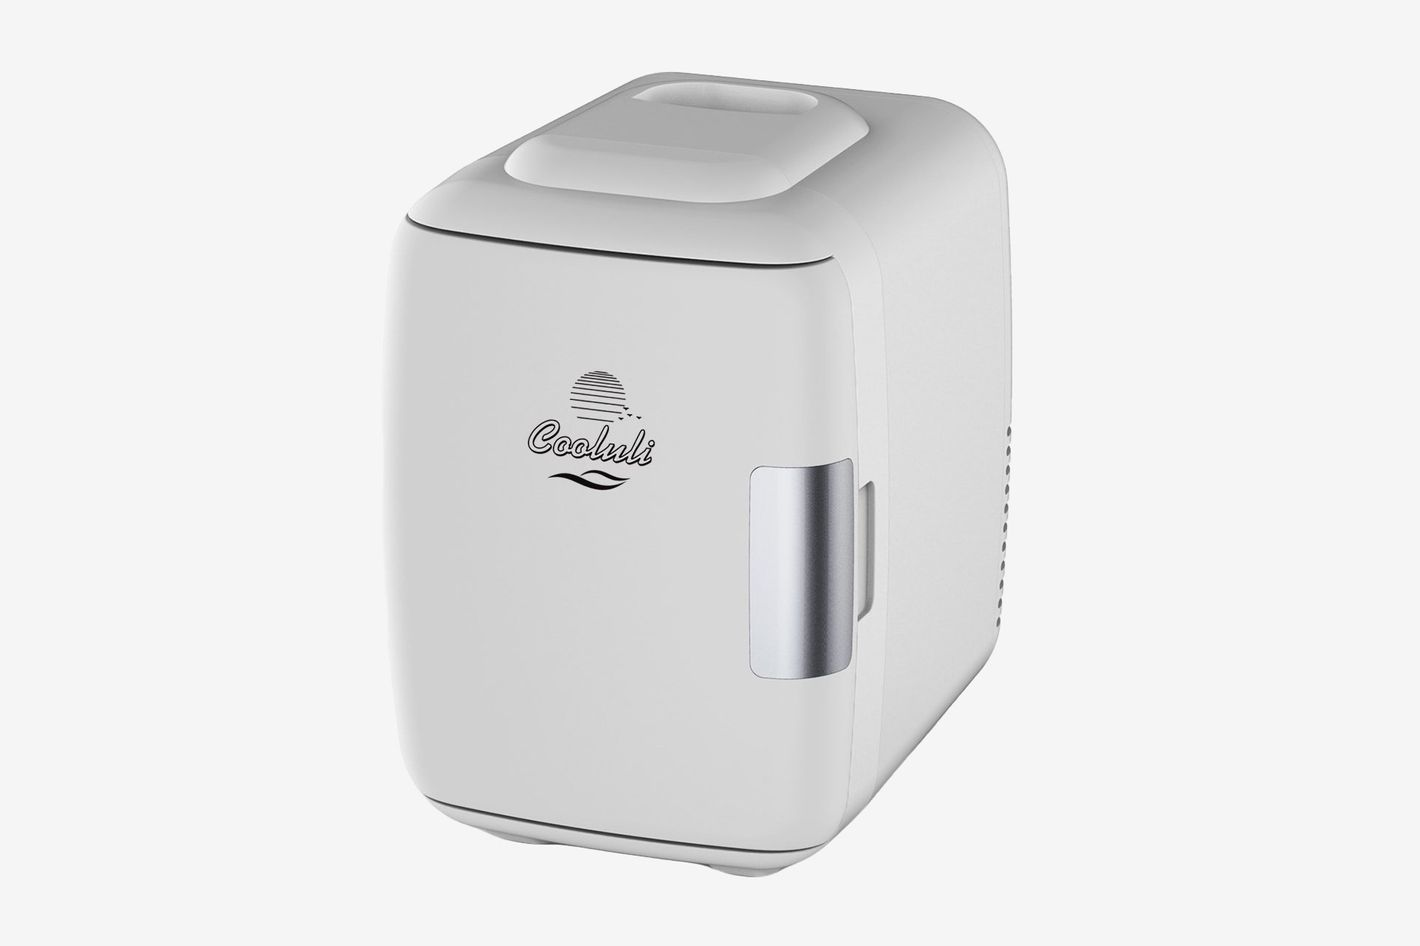 A small white mini-fridge